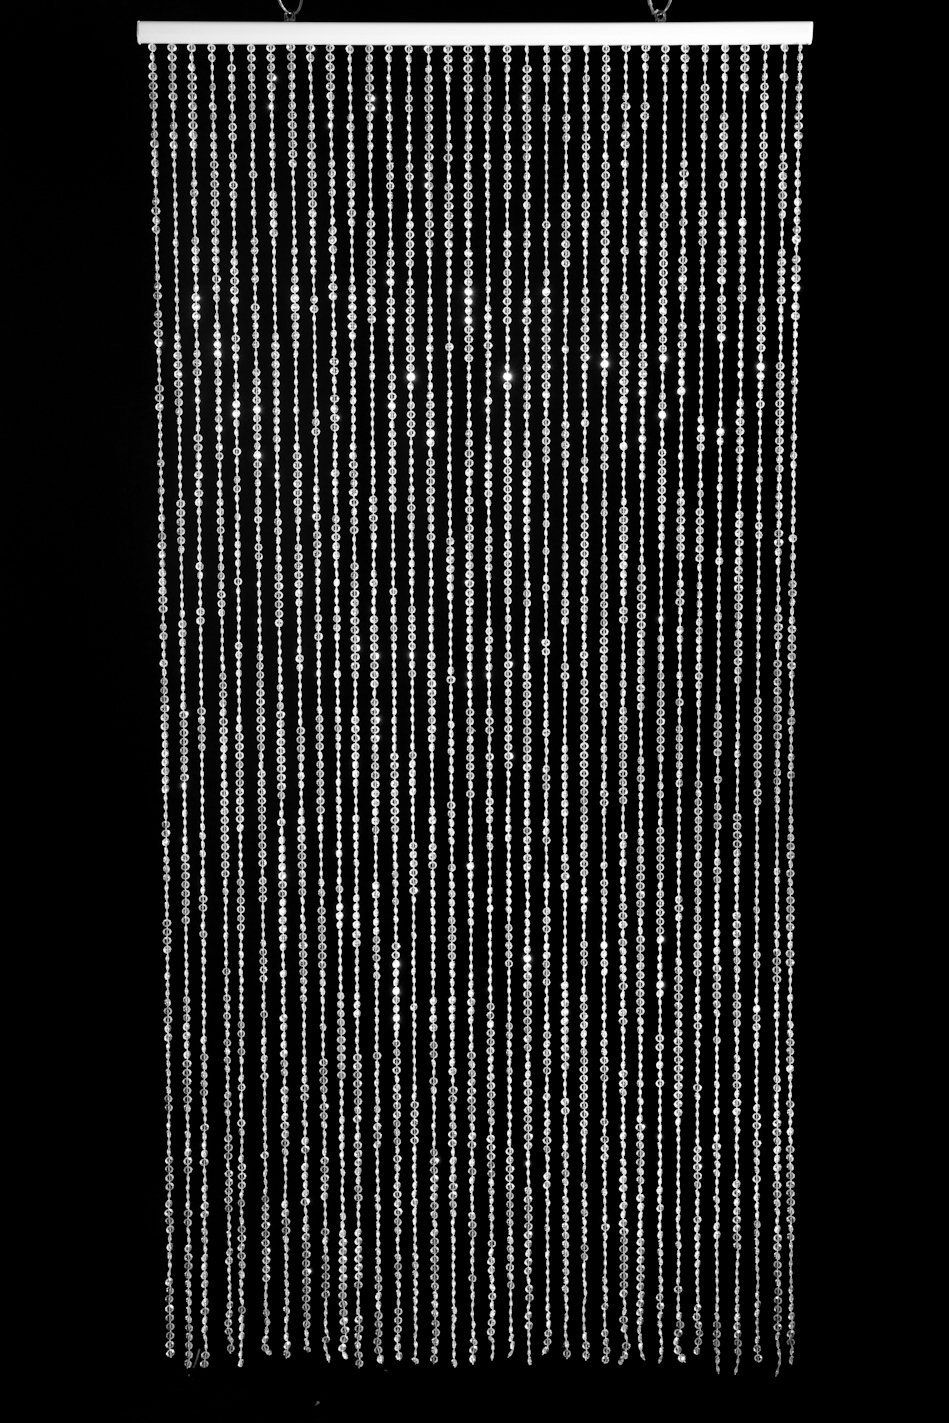 Amazon Com Shopwildthings Beaded Curtain Raindrops Glow In The Dark White Acrylic Door Beads Blacklight